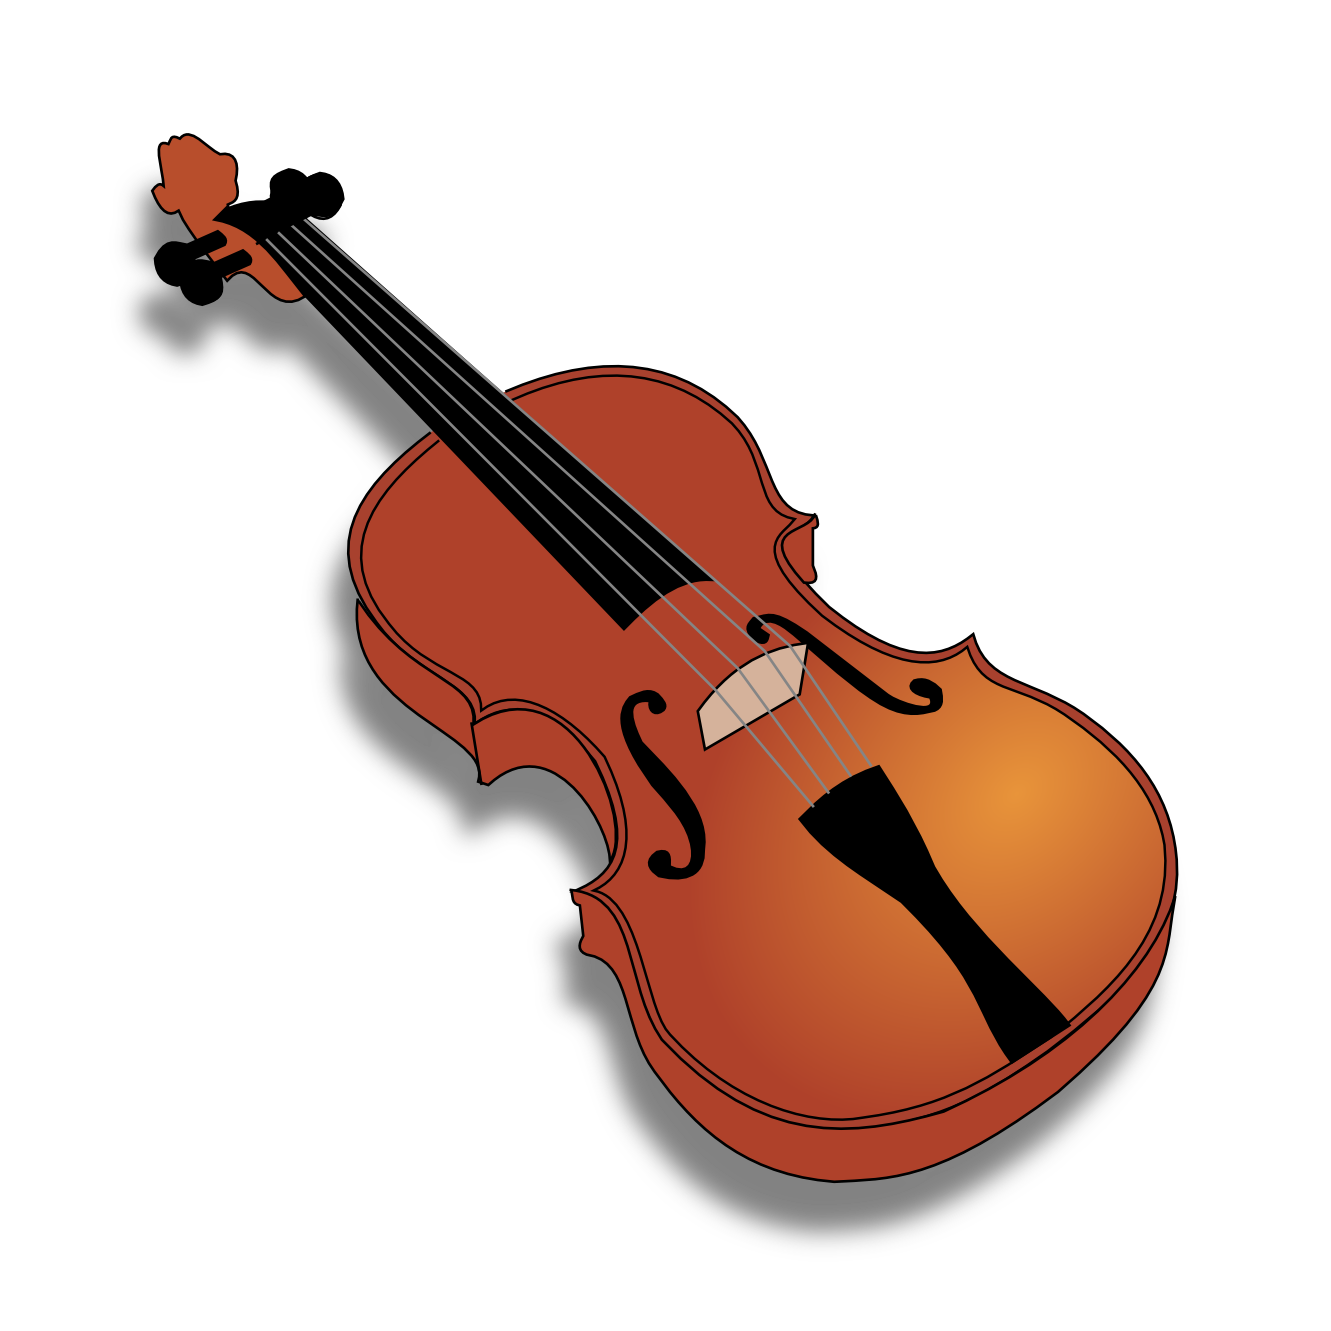 Piano clipart church. Violin clip art preschool